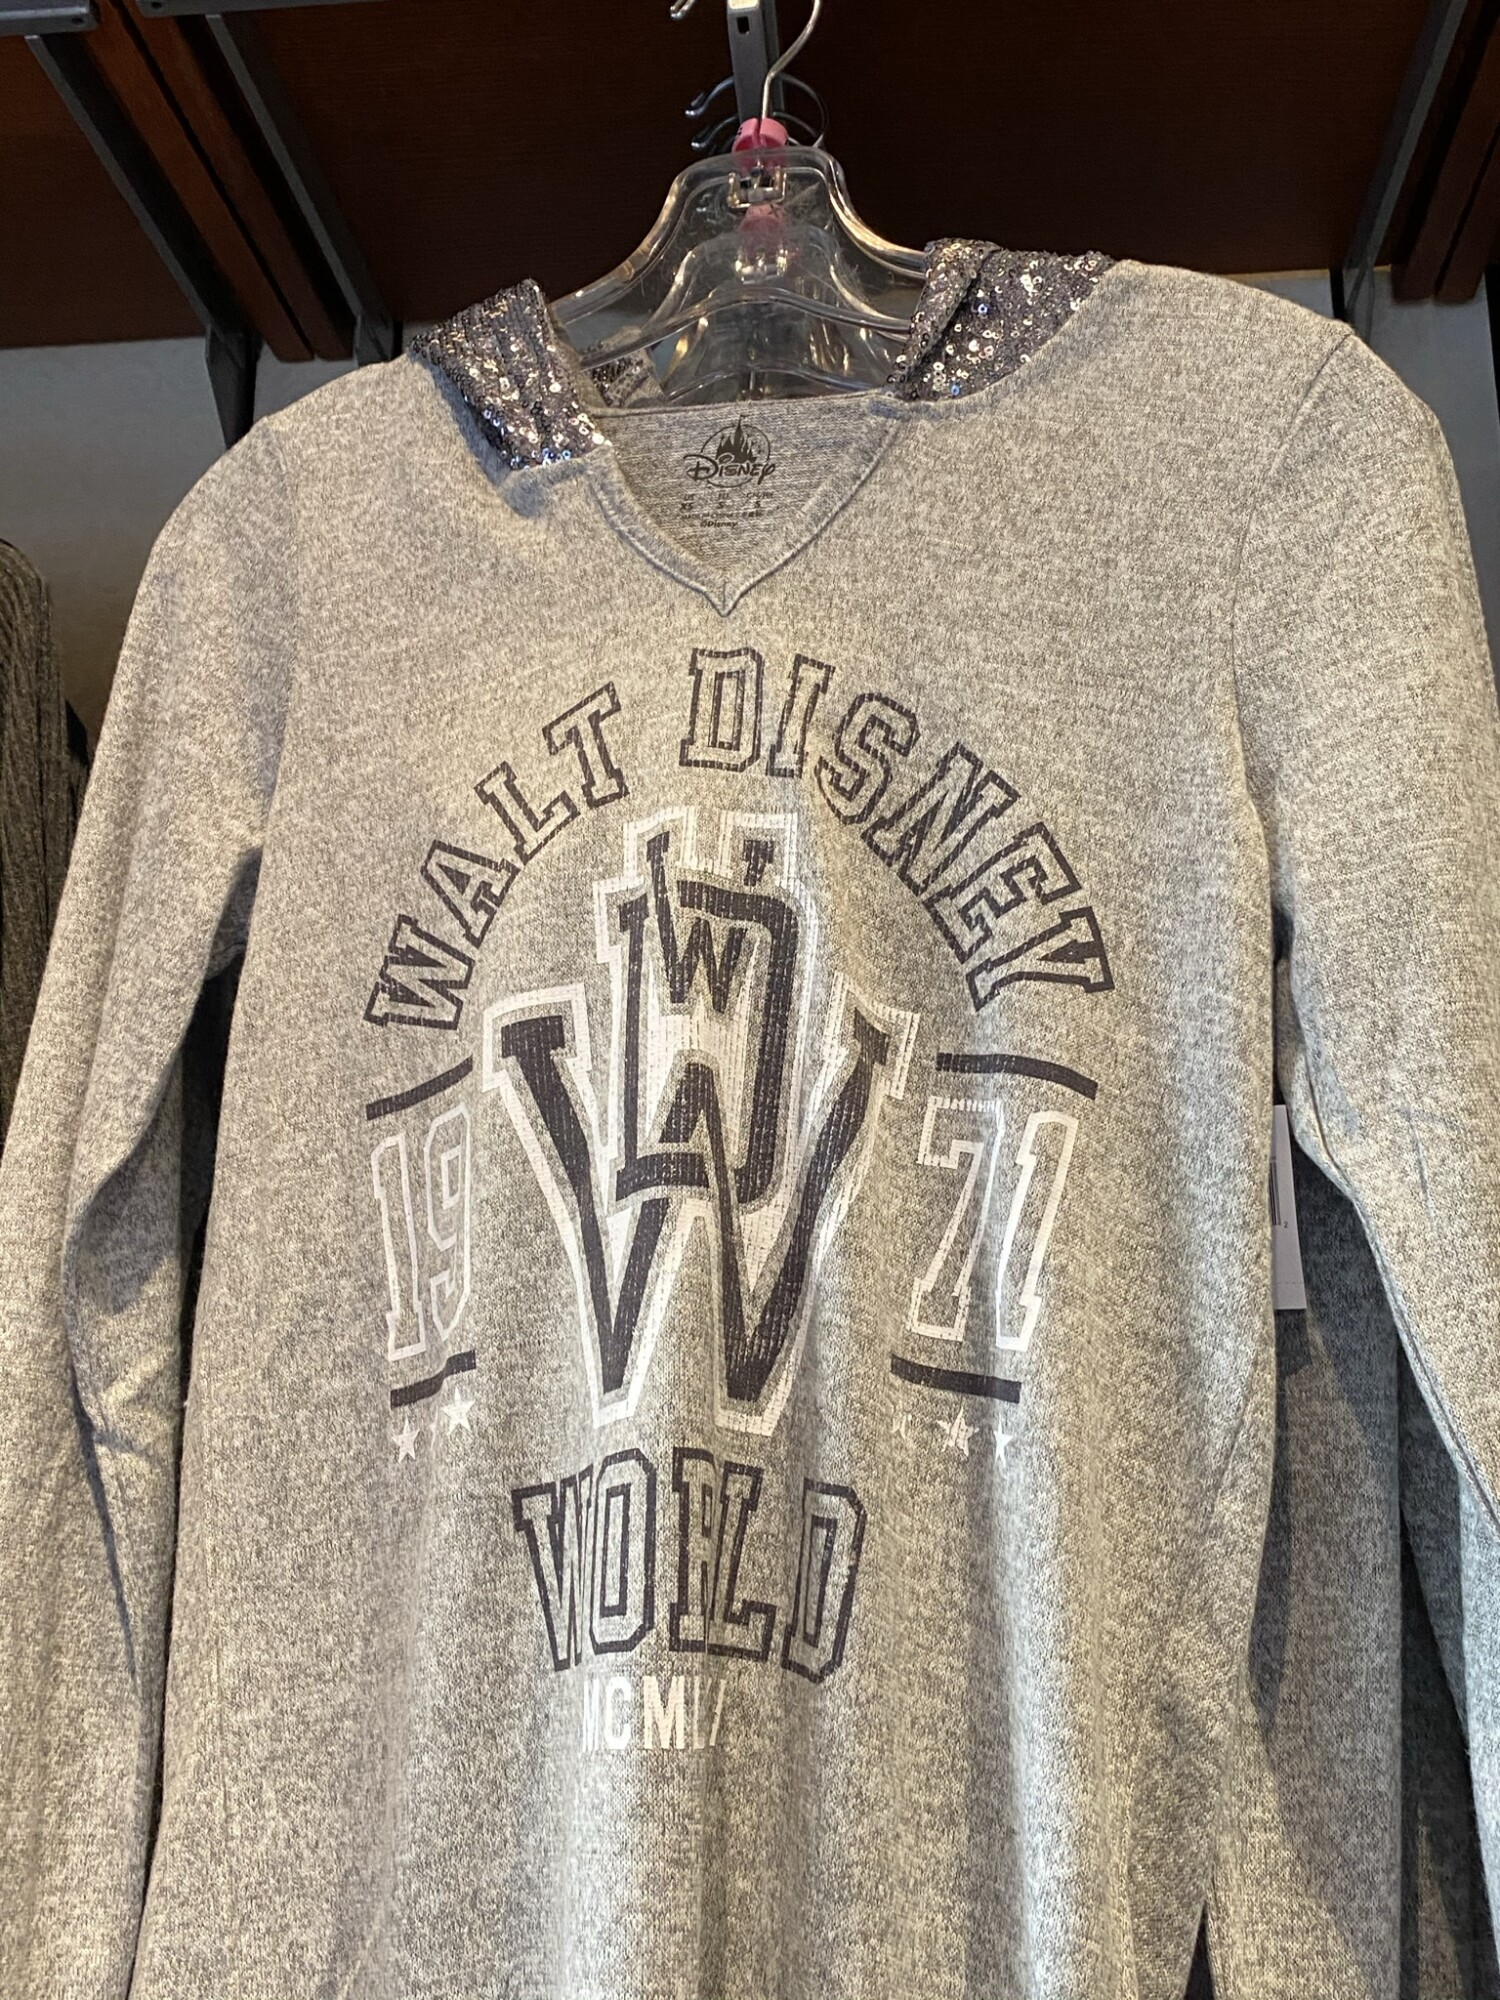 New Sparkly Silver Apparel at Hollywood Studios! 12